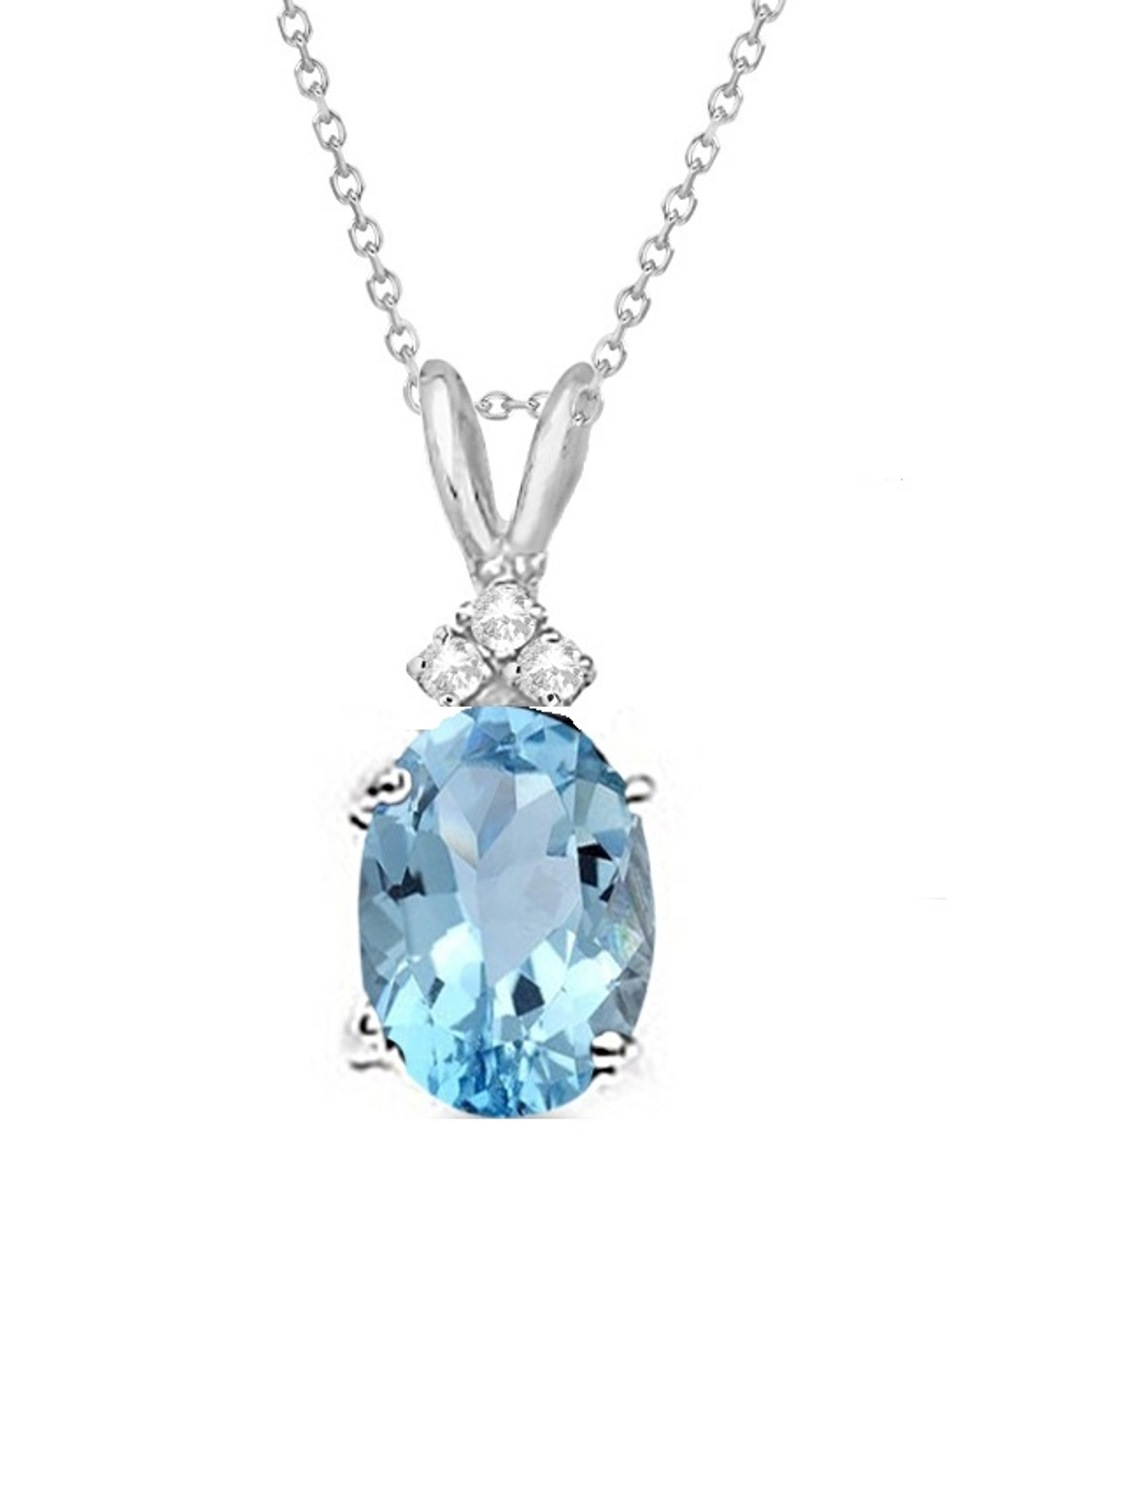 Genuine 1.00 Carat Natural 7x5mm Oval Shaped Swiss Blue Topaz with White Topaz Necklace In 925 Sterling Silver